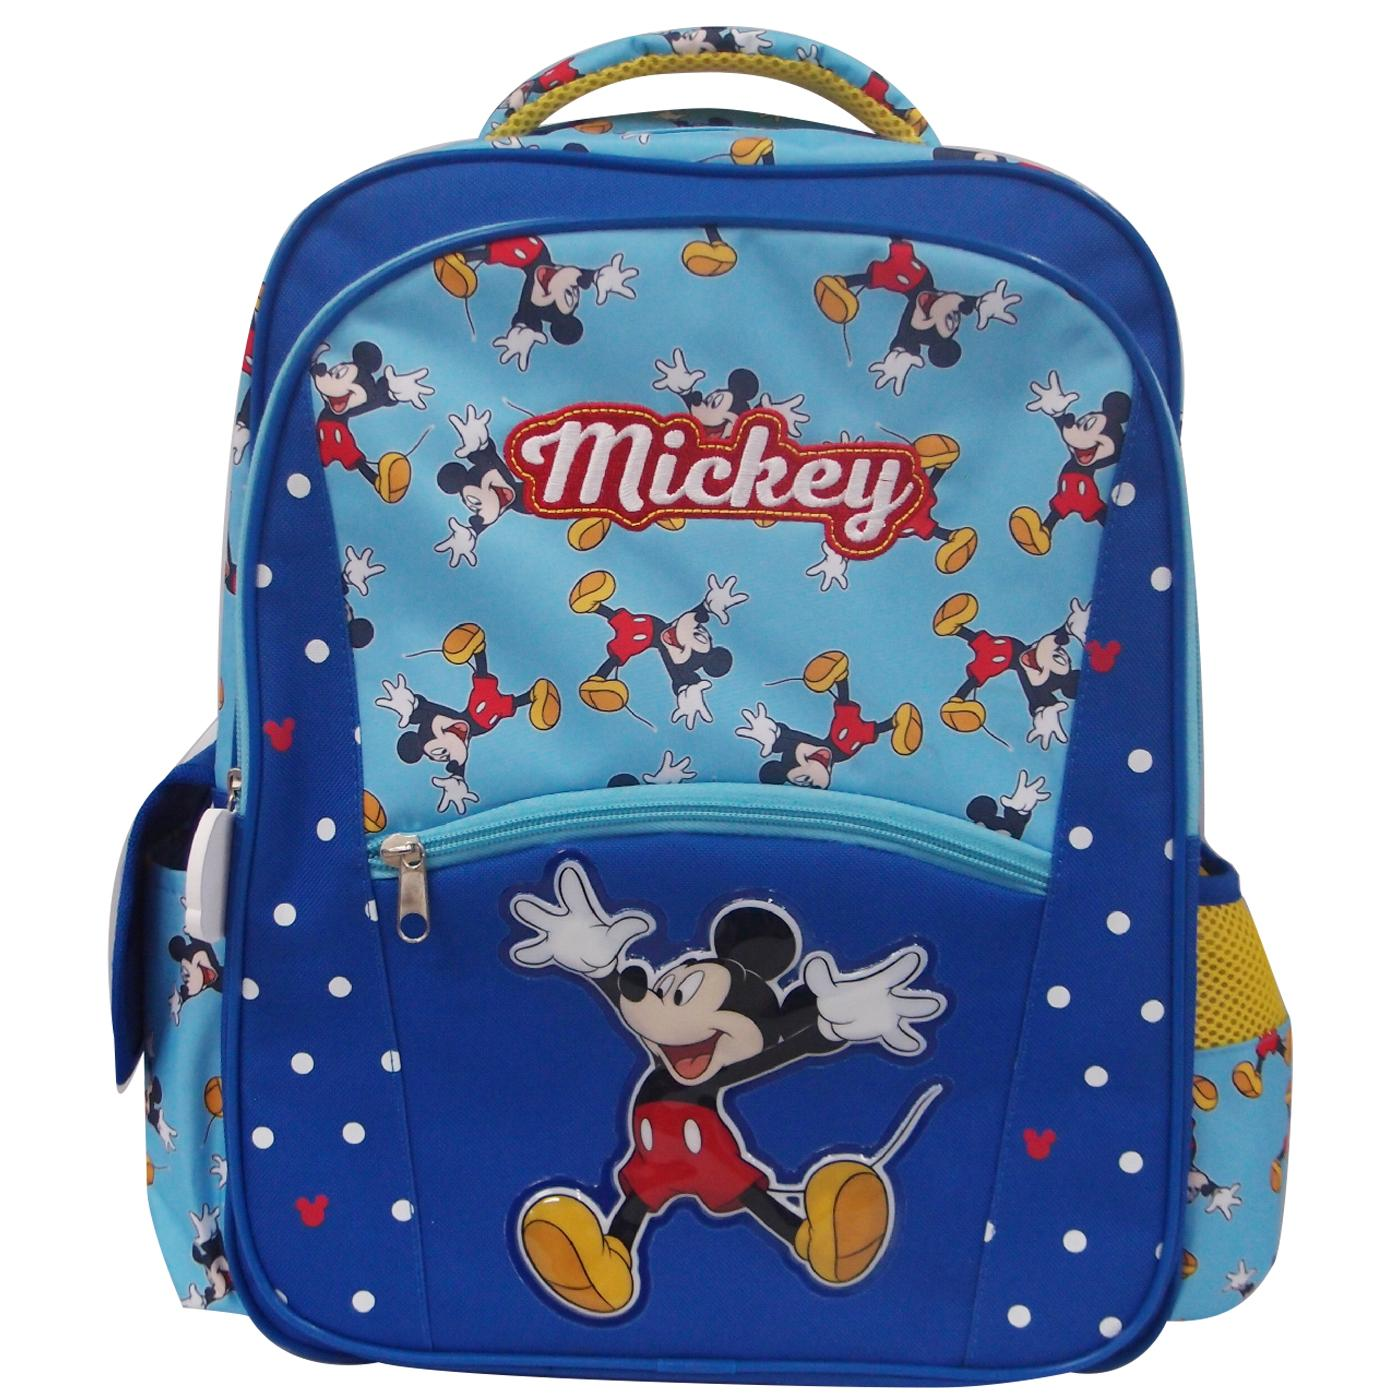 Mickey Mouse Schoolbag